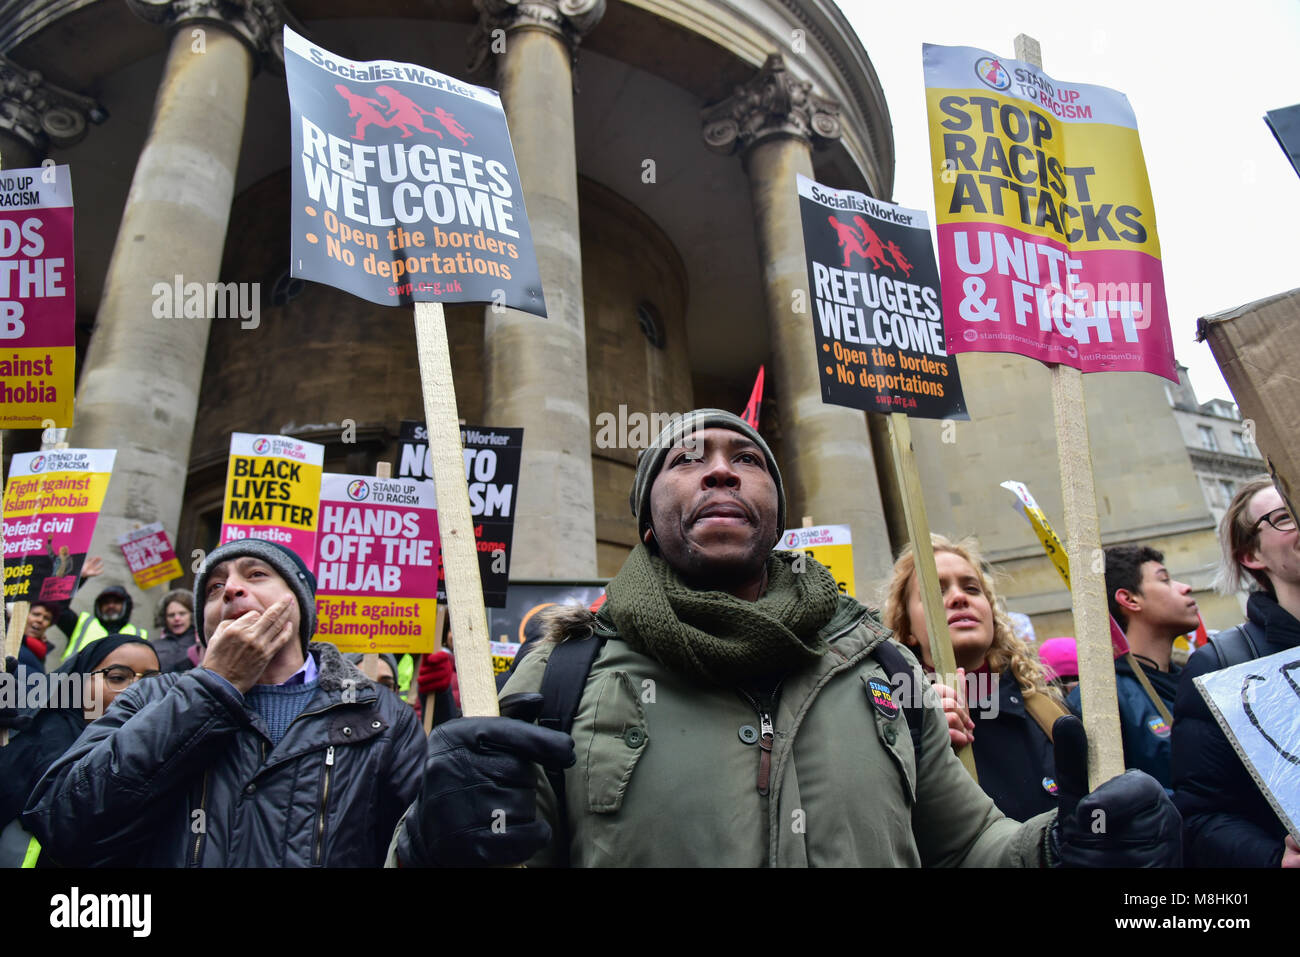 London, UK. 17 March 2018. Thousands assembly at the front of BBC boardcasting house March Against Racism highlight - Stock Image